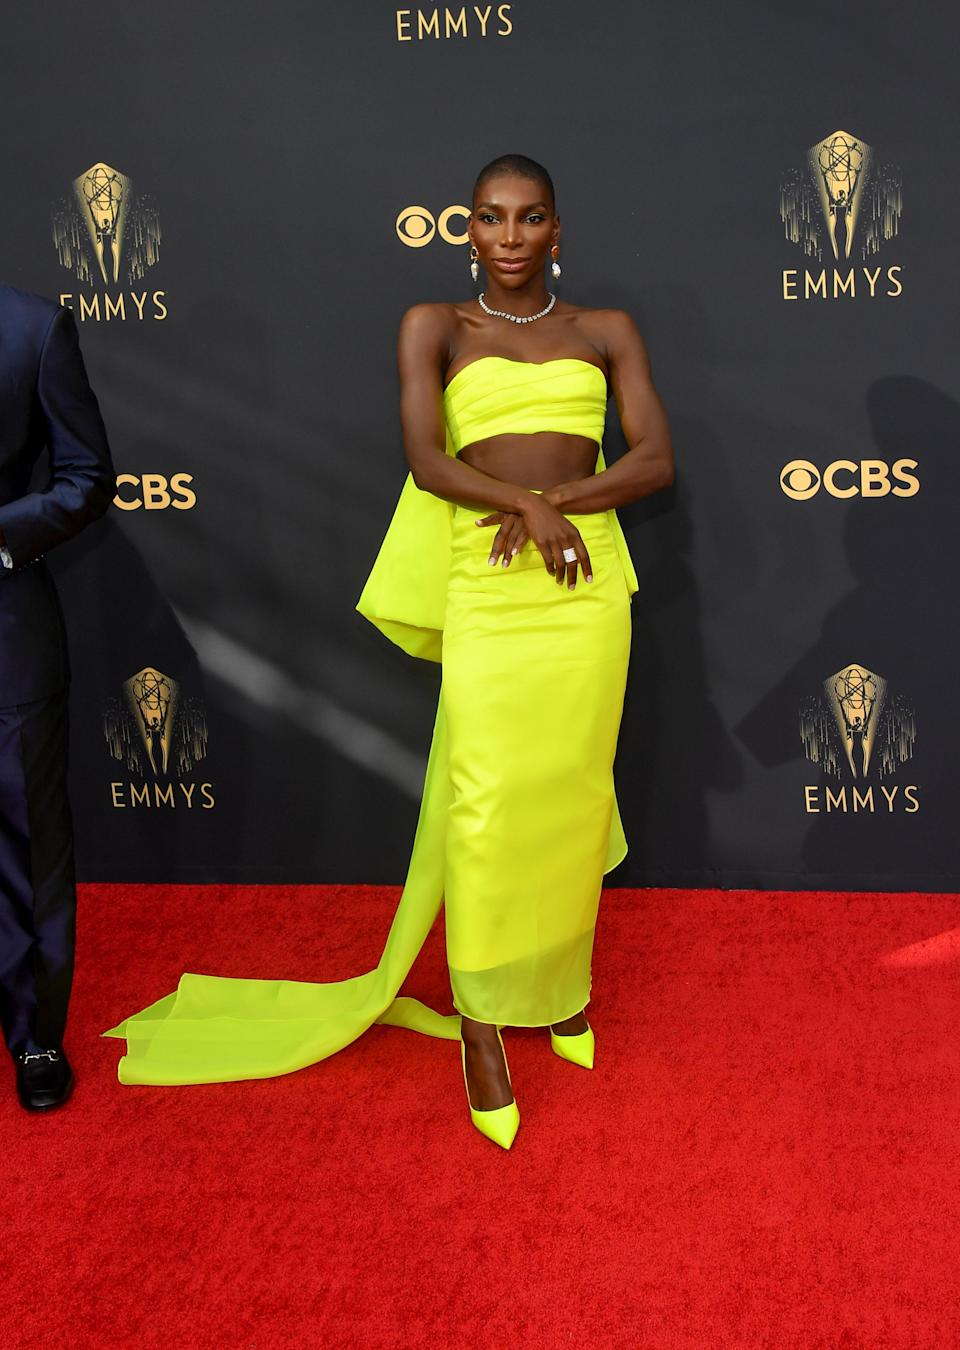 Michaela Coel attends the 2021 Emmy Awards in Los Angeles. - Credit: Michael Buckner for Variety